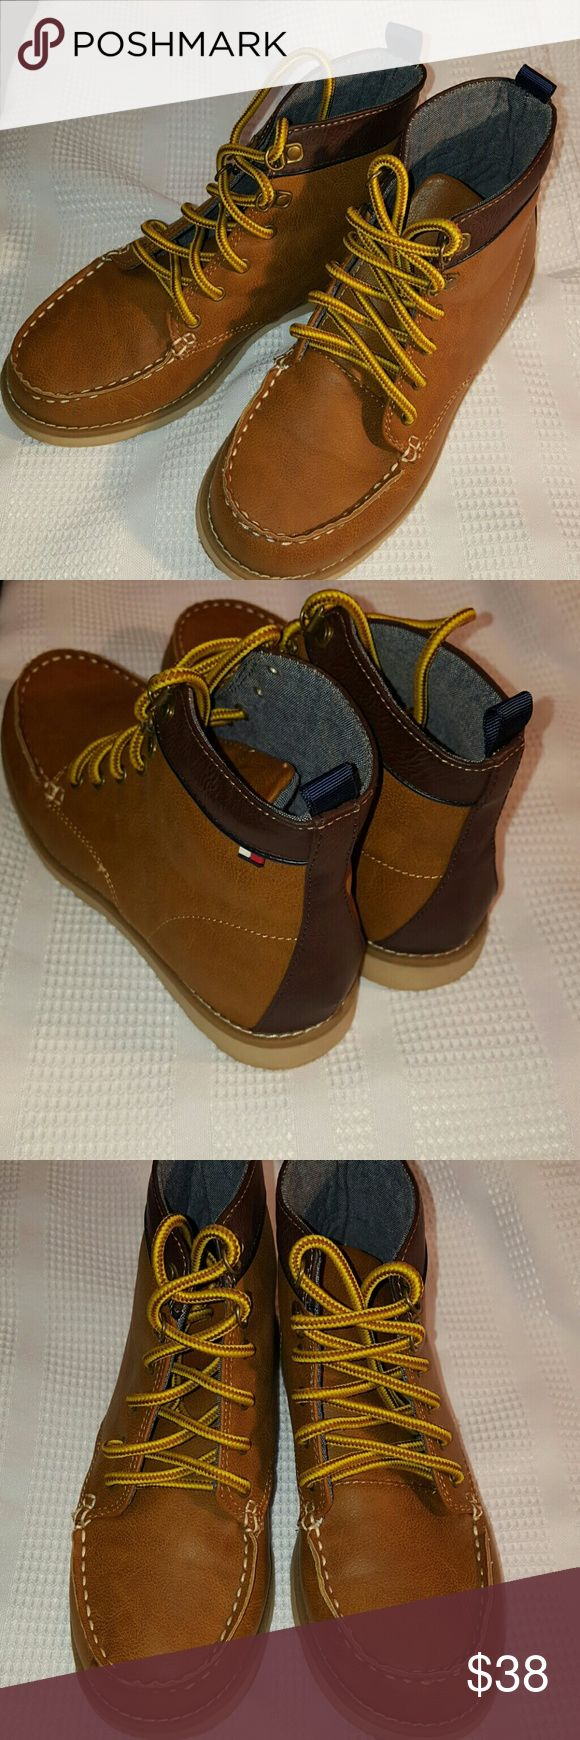 Boys Tommy Hilfiger Hiking Boots sz 2 Worn 2x.  Perfect condition.  Sz 2 youth boys hiking boots.  Chambray lining.  Cognac color with brown trim. Smoke free, pet free home. Tommy Hilfiger Shoes